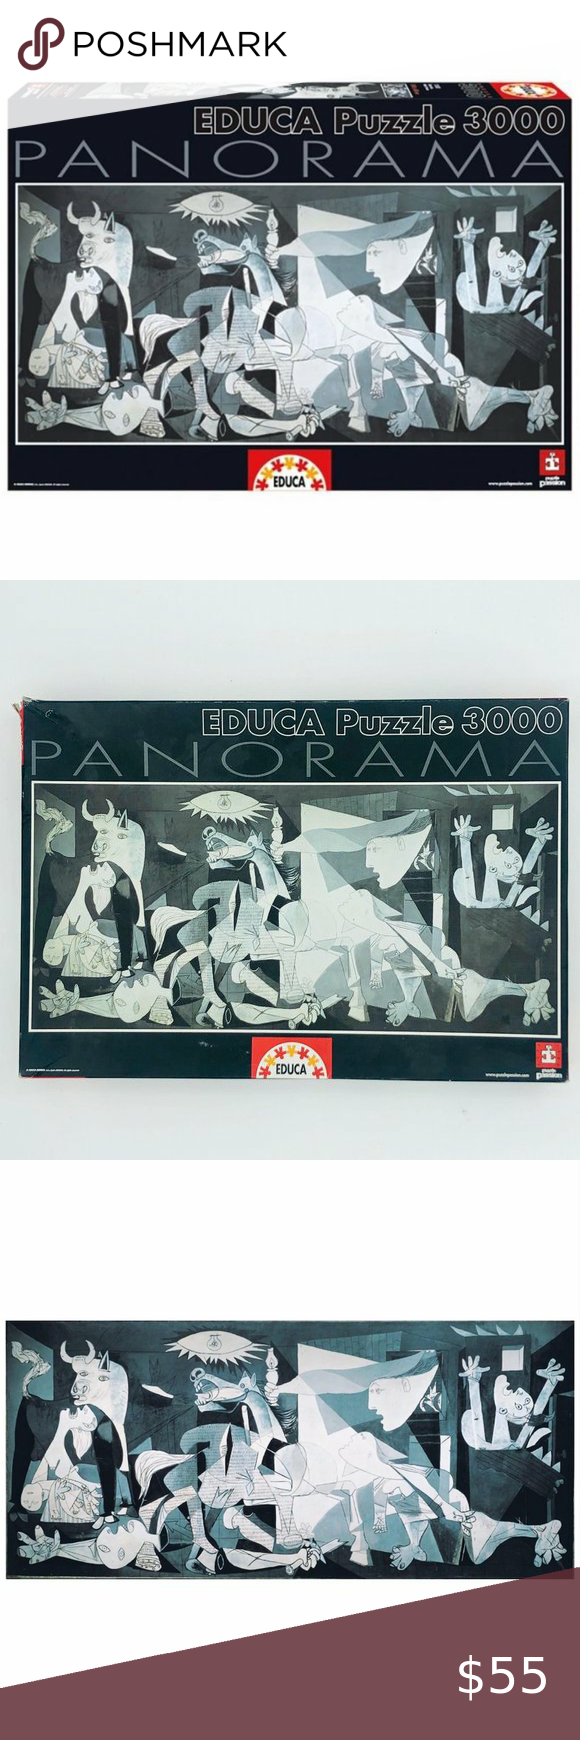 Pablo Picasso Guernica 3,000 piece Jigsaw Puzzle in 2020